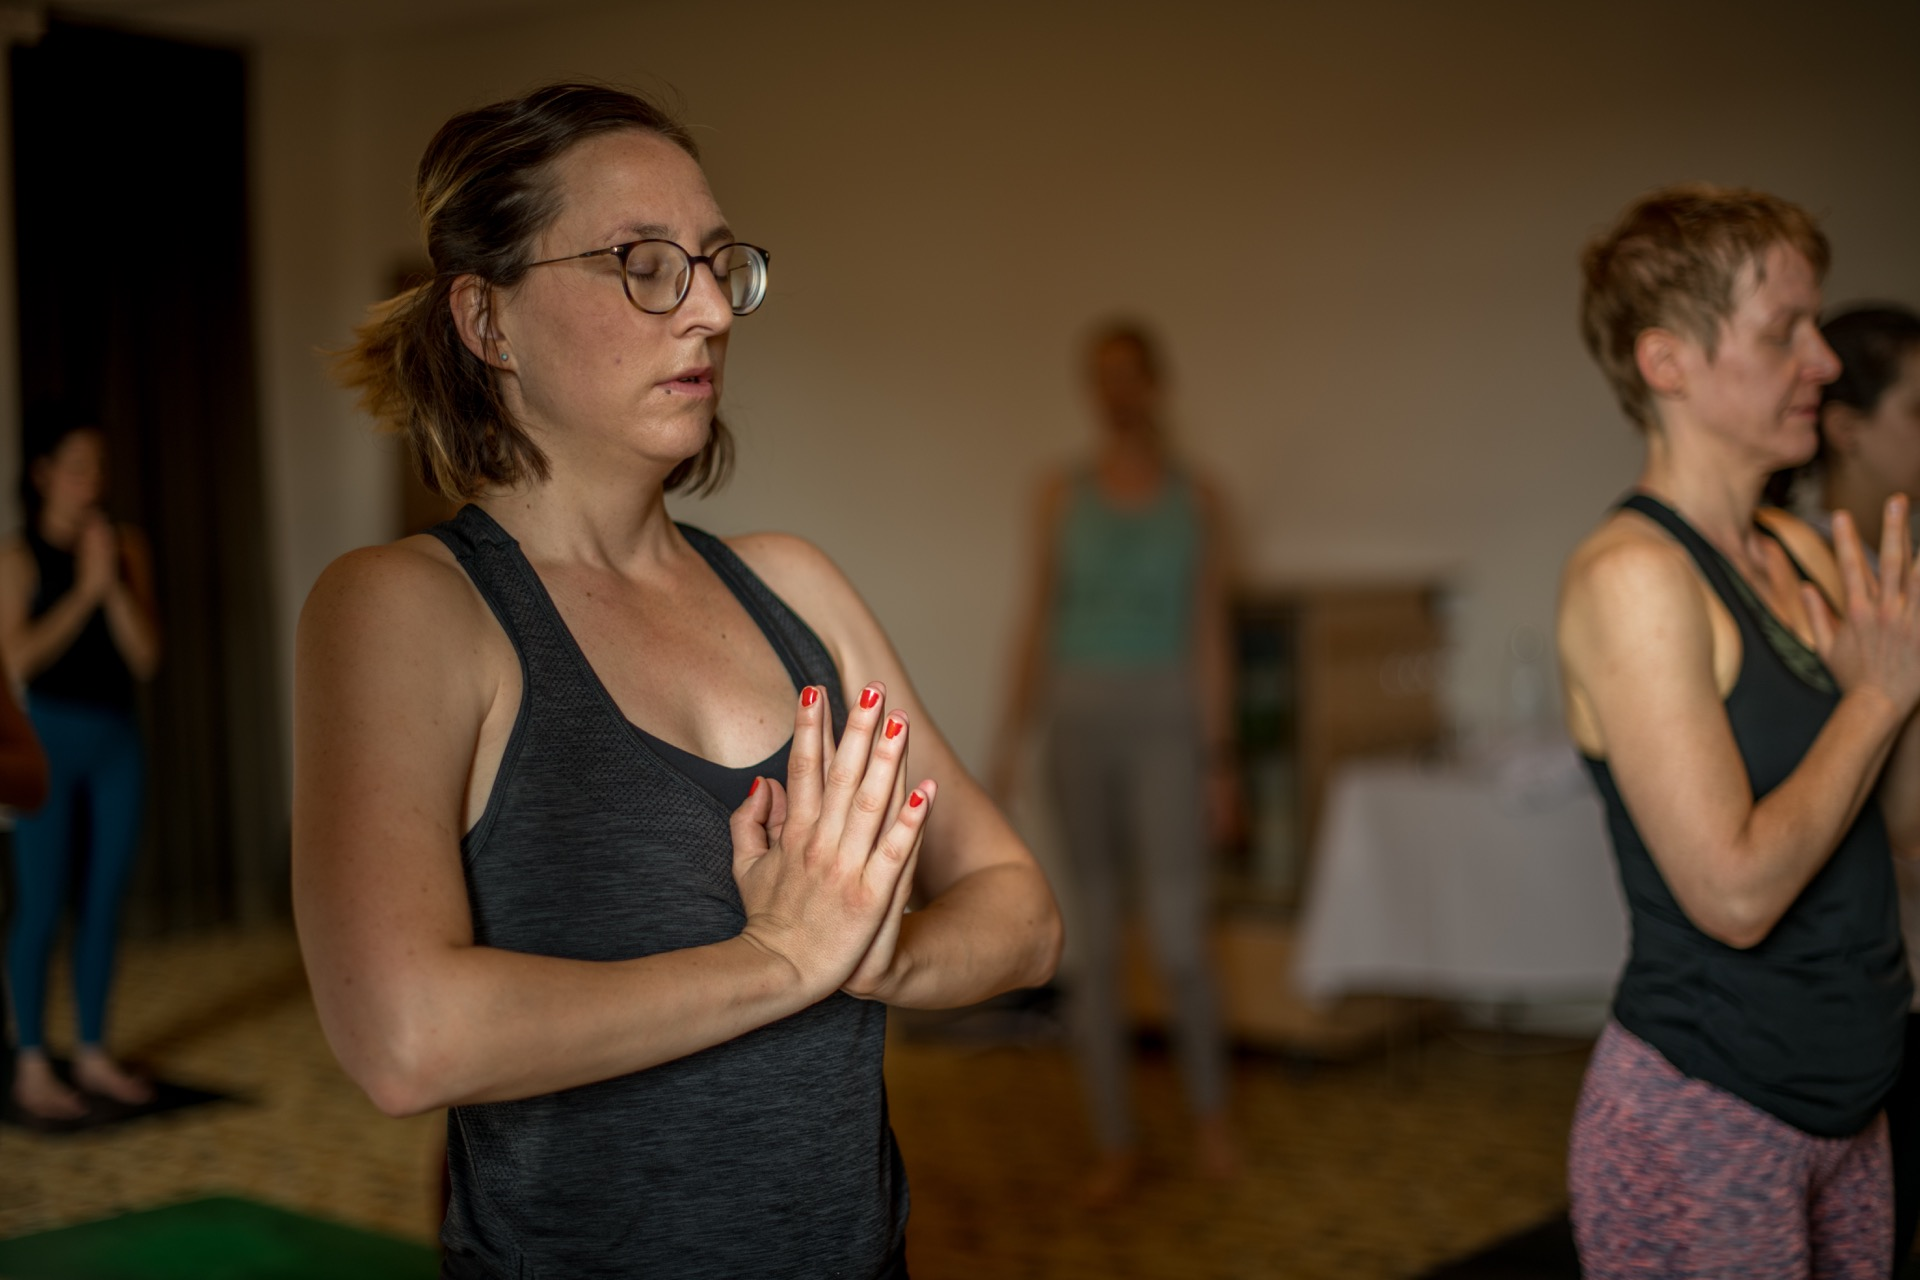 Hie-Kim-Friends-2019-Yoga-Retreat-Alina-Matis-Photography-095 - Hie Kim Yoga - Yoga Retreat - Yoga Workshops und Reisen